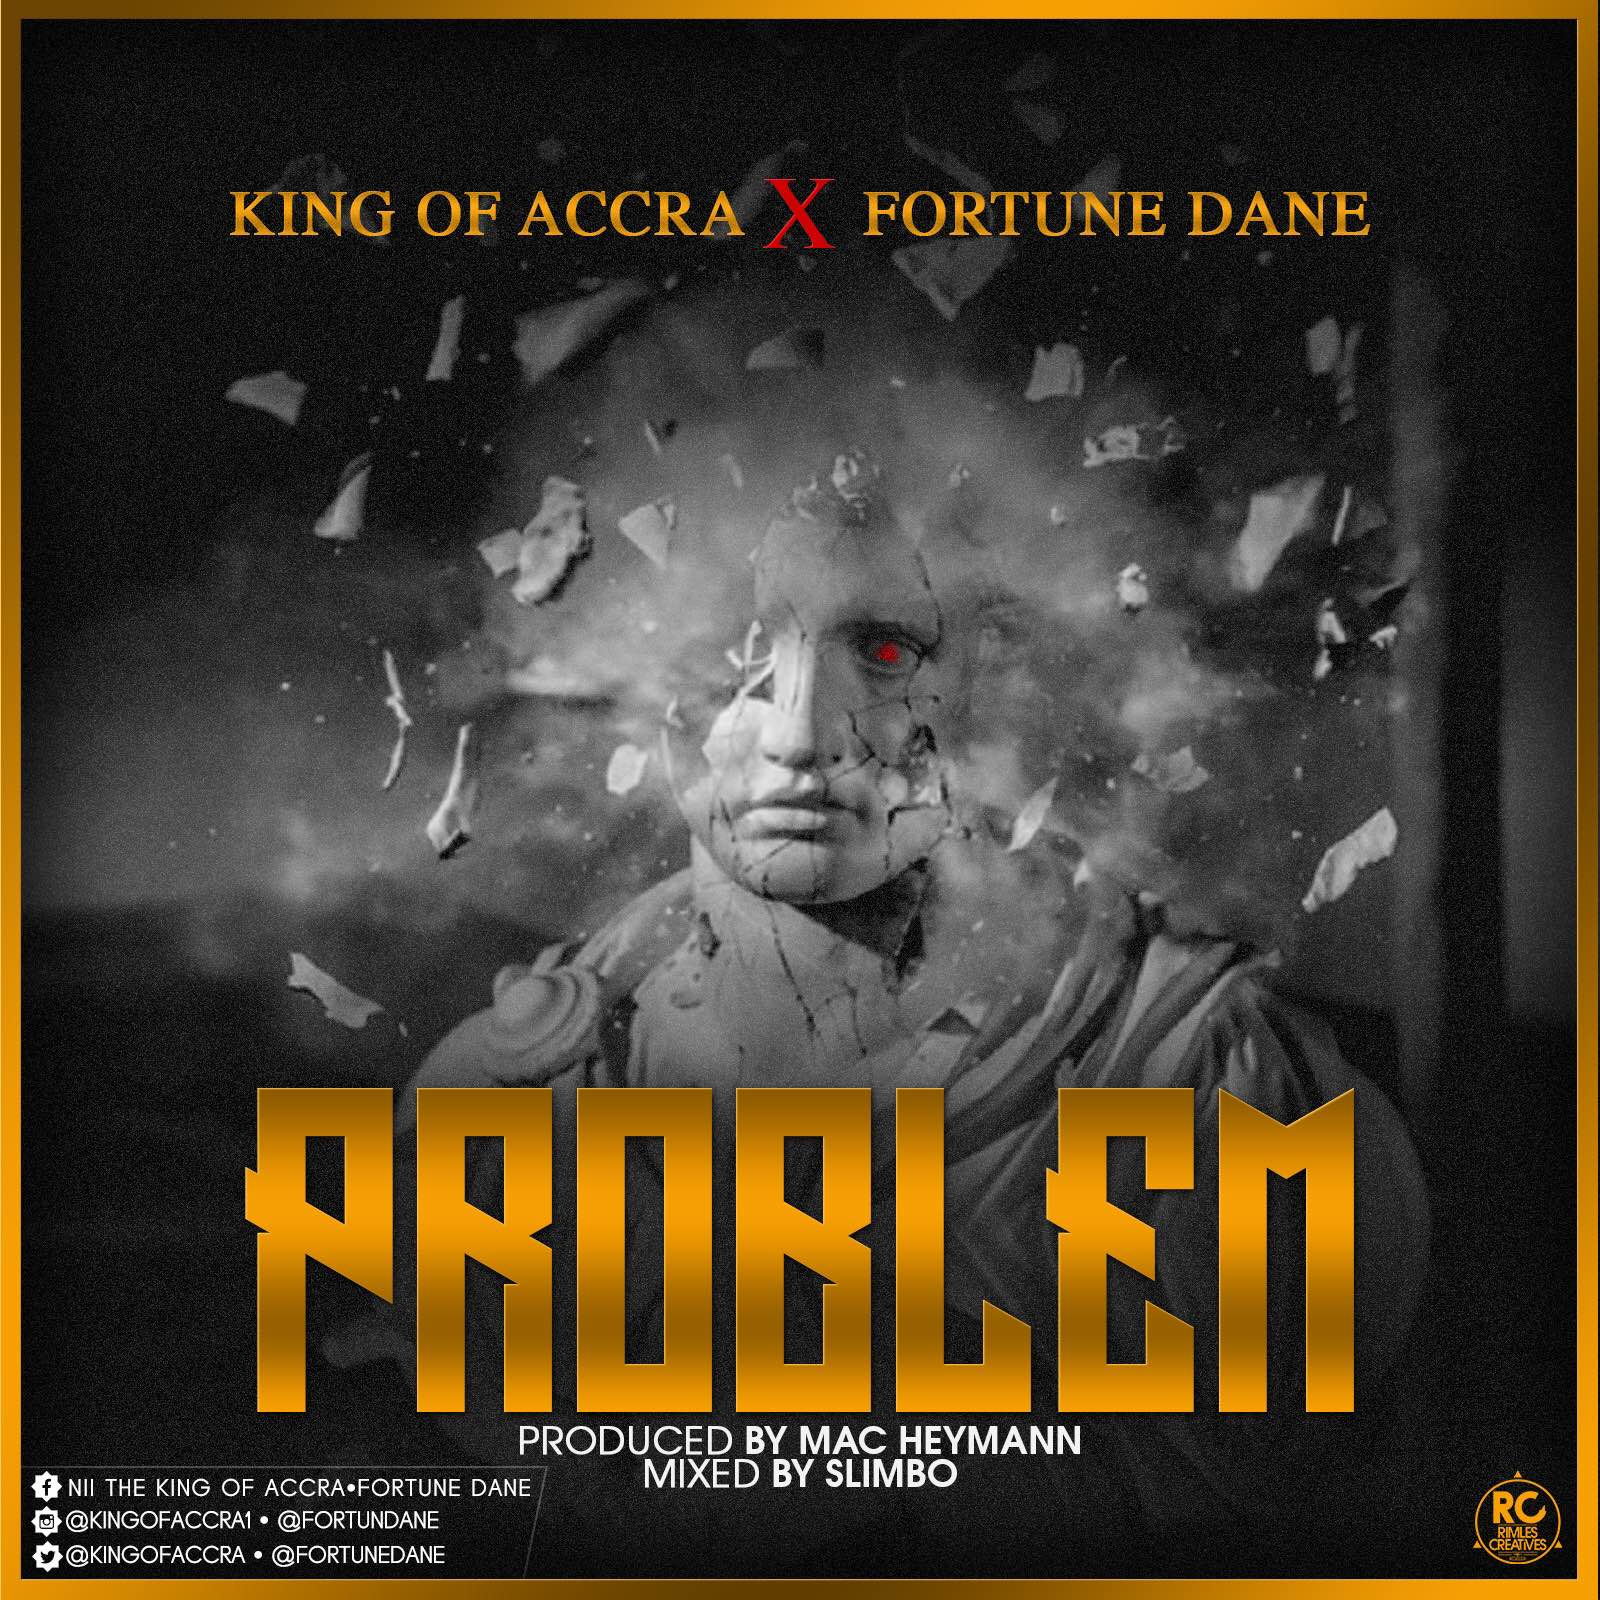 King Of Accra X Fortune Dane – Problem (Prod. By Mac Heymann Mixed By Slimbo)